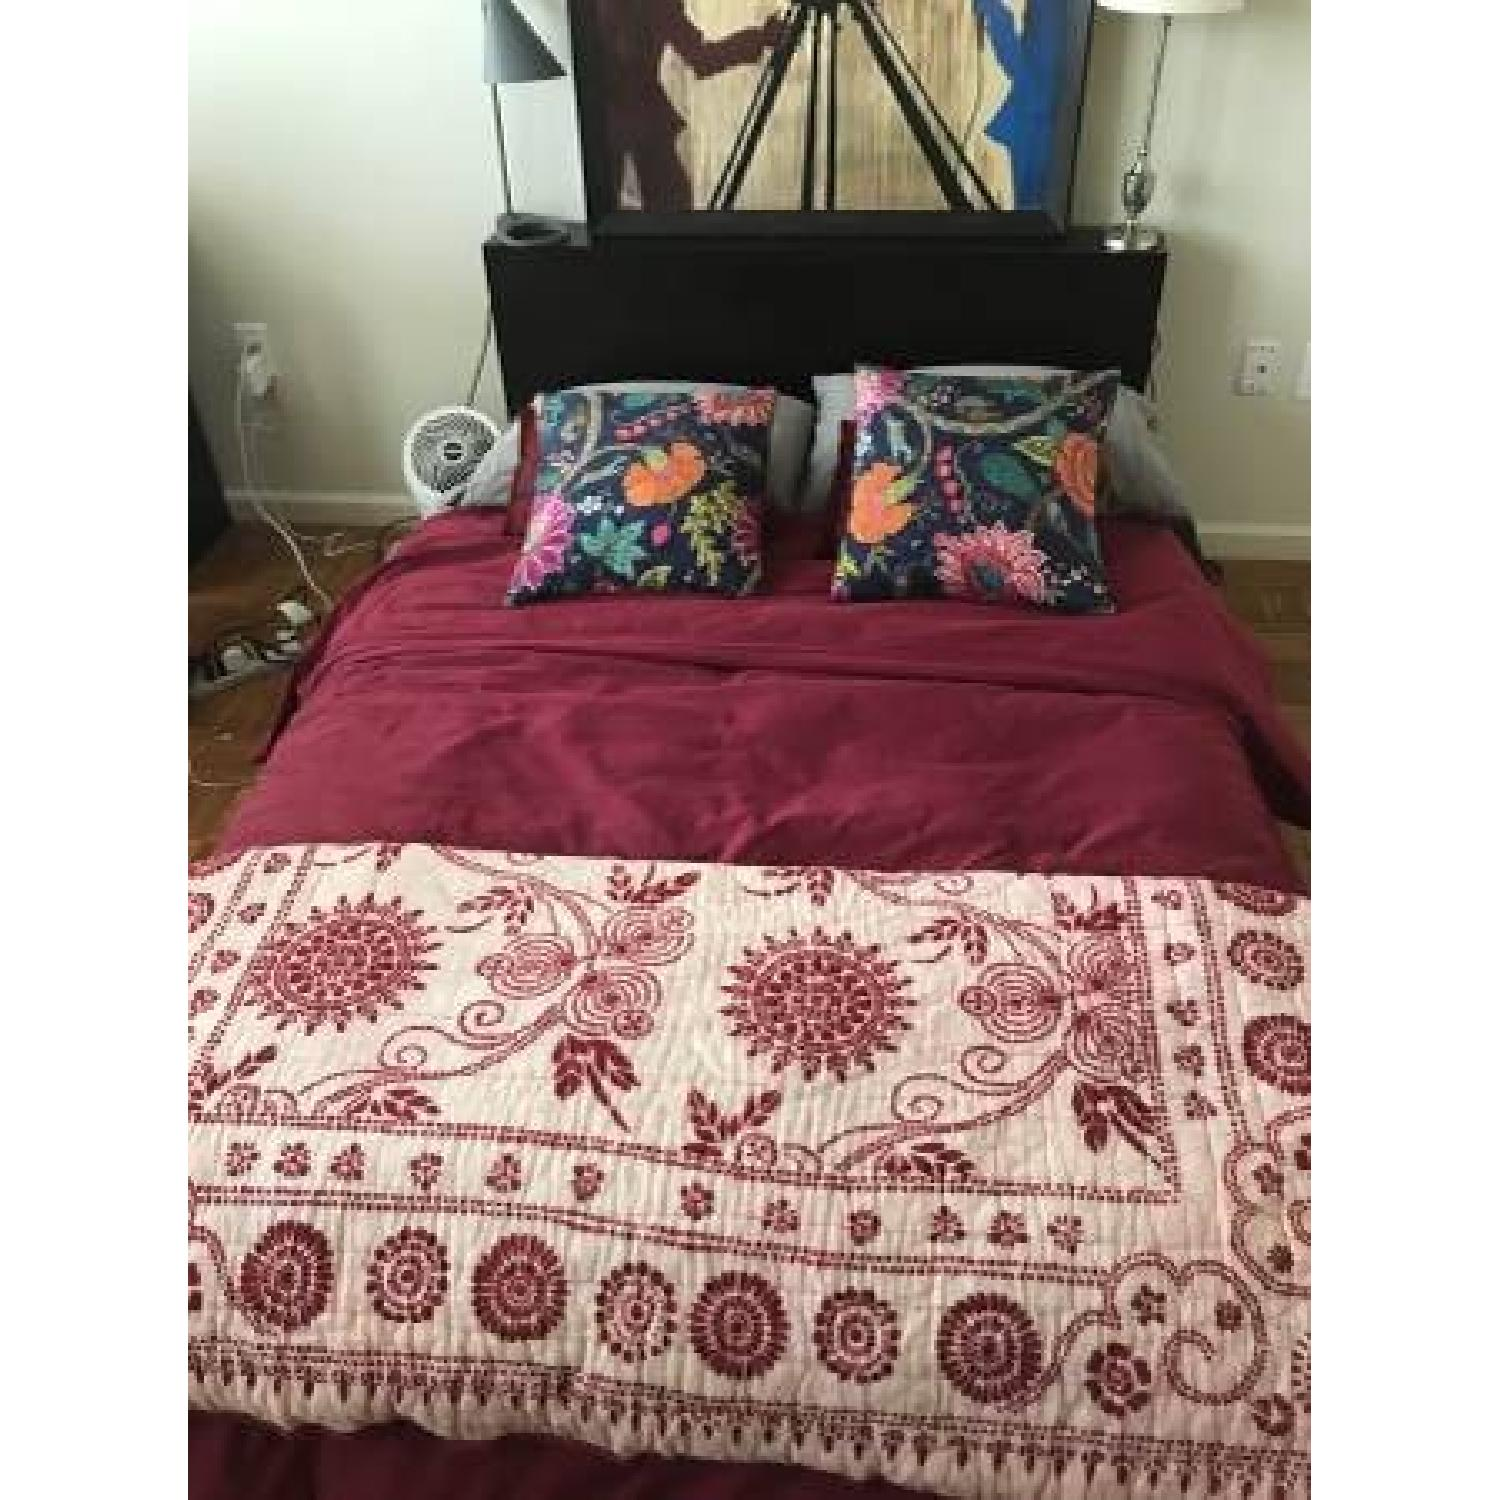 West Elm Platform Bed Frame w/ Headboard-2